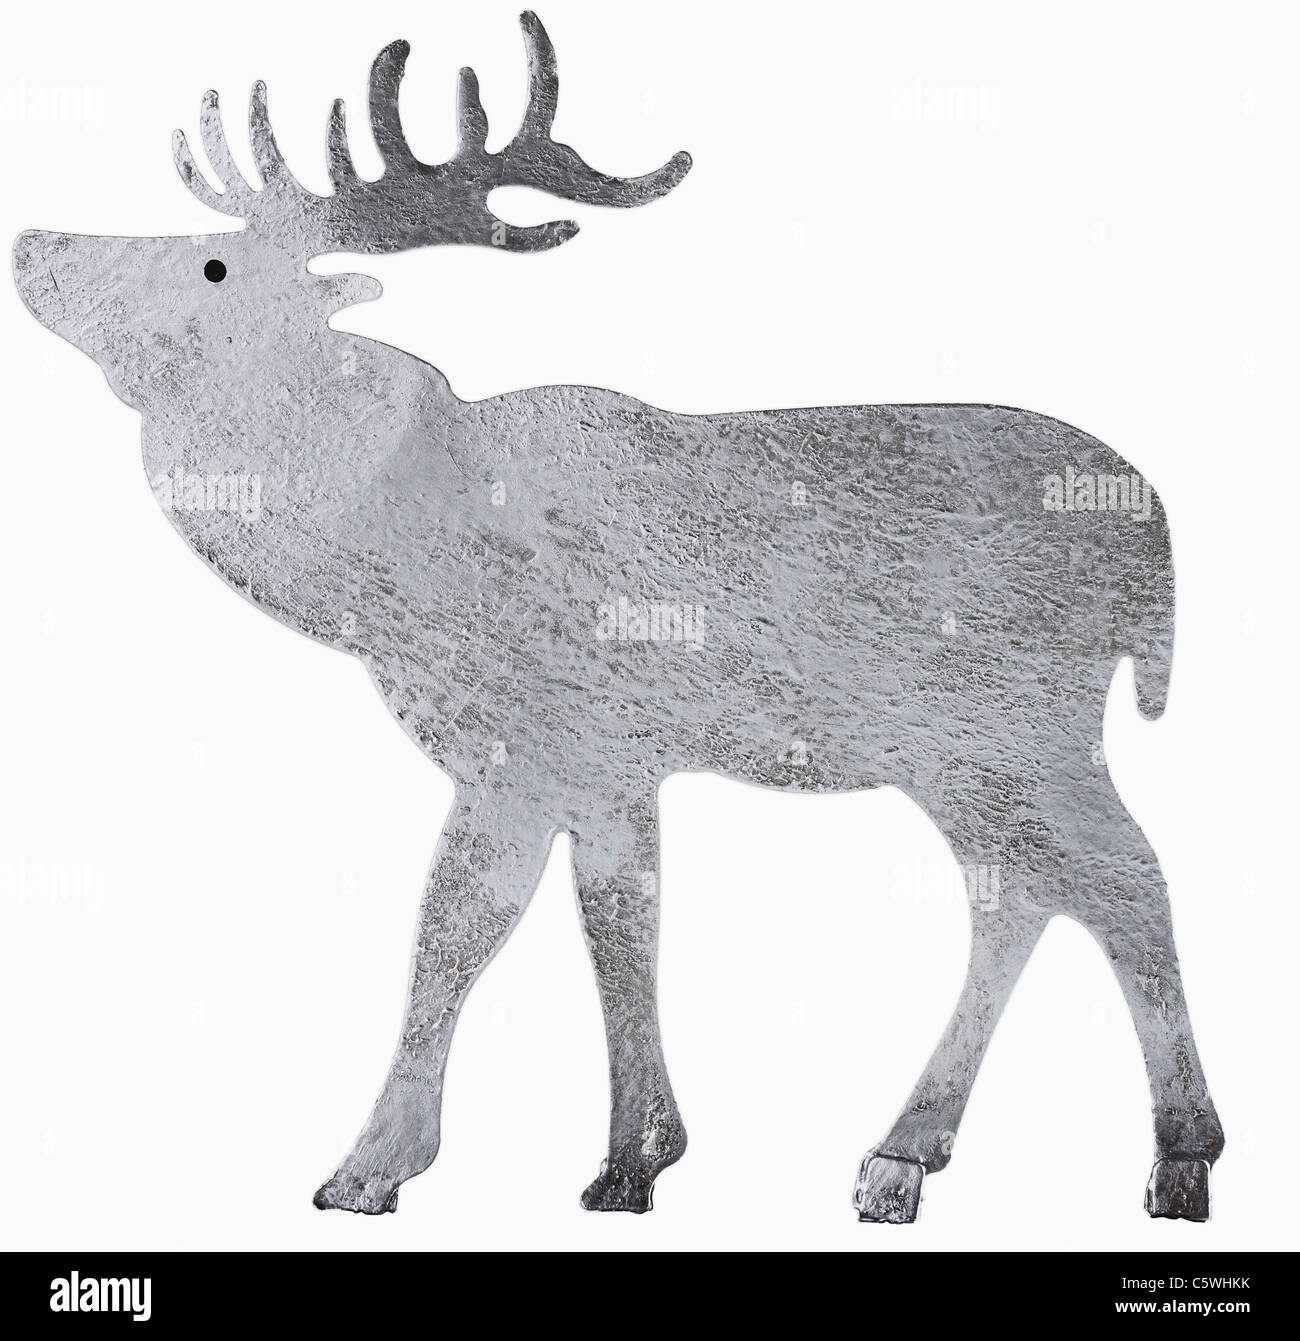 Metal sheet reindeer figurine against white background, close up - Stock Image